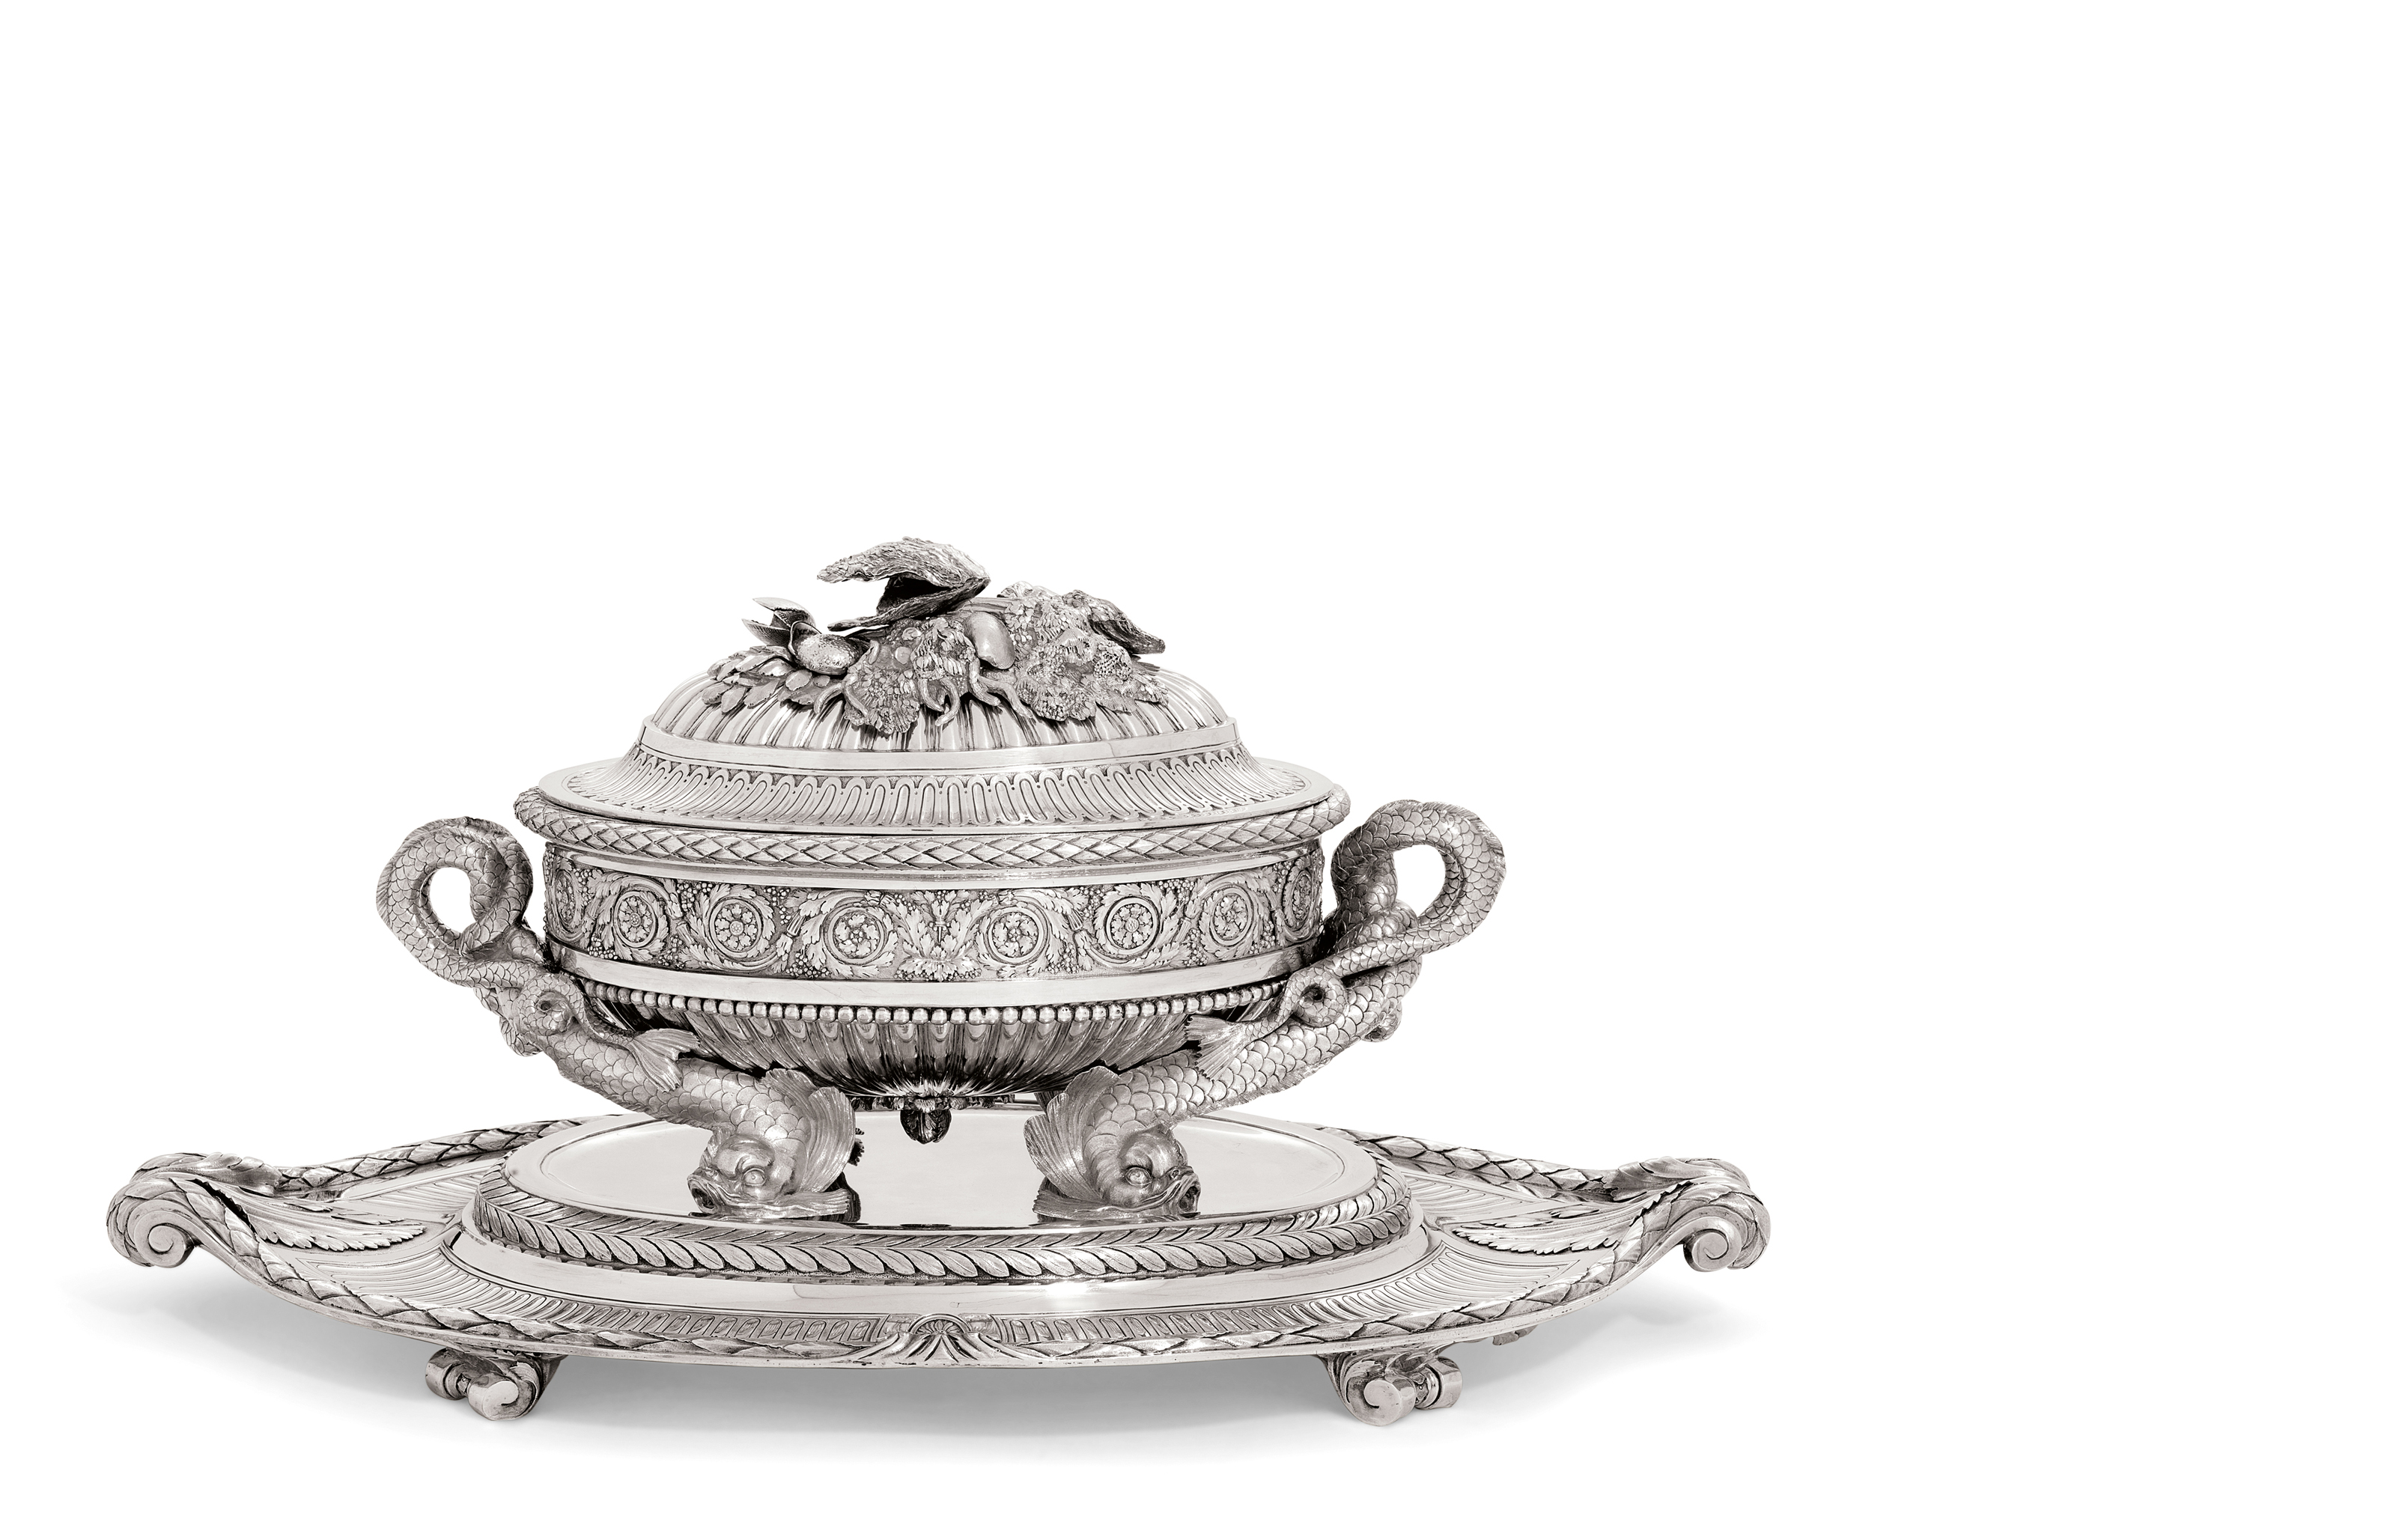 AN AUSTRIAN SILVER SOUP-TUREEN, COVER, STAND AND LINER FROM THE SECOND SACHSEN-TESCHEN SERVICE